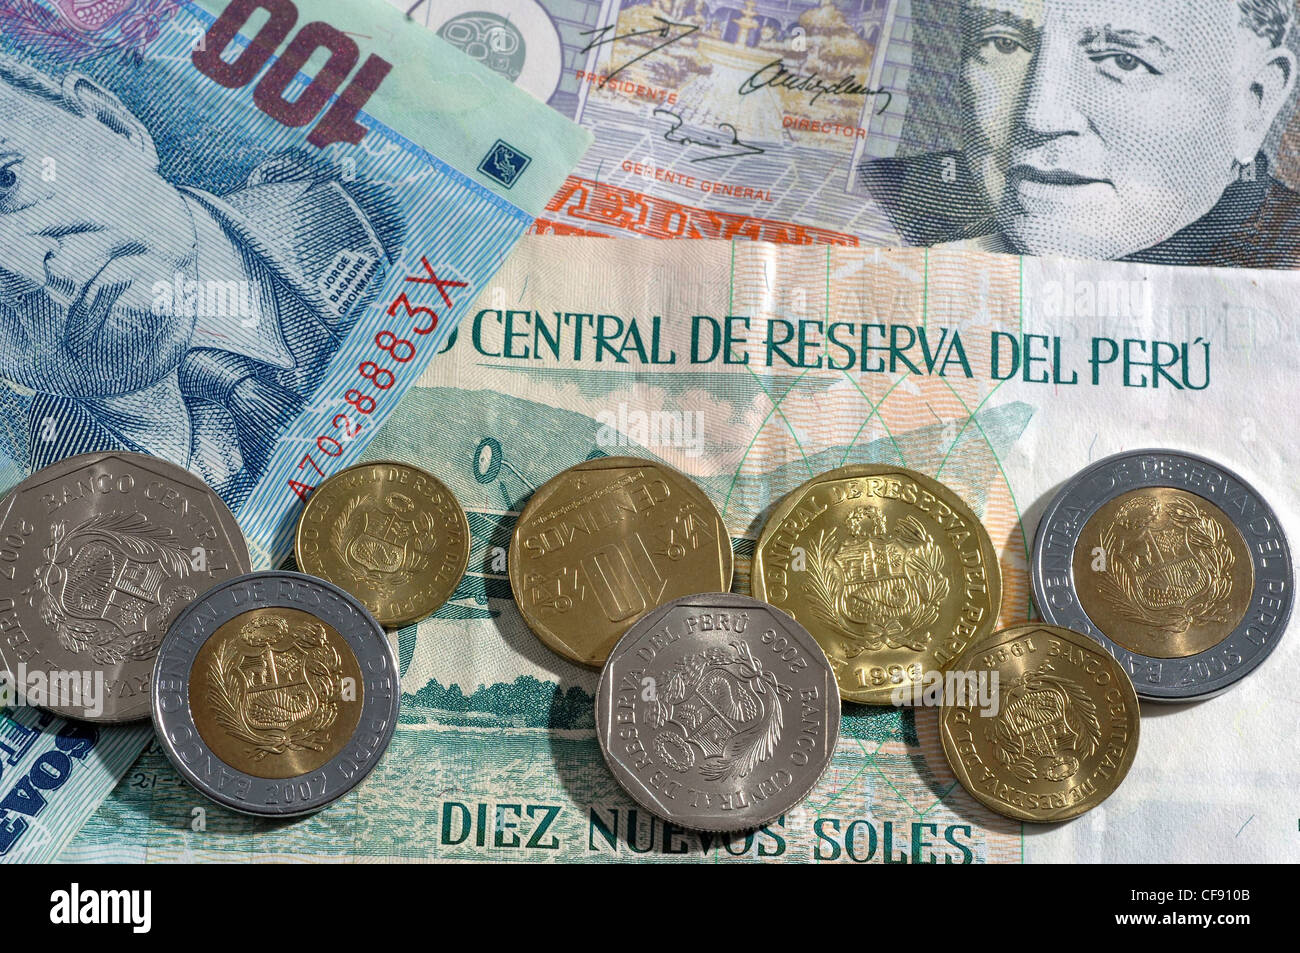 Peru currency stock photos peru currency stock images alamy money notes coins colorful centimos currency peru stock altavistaventures Images